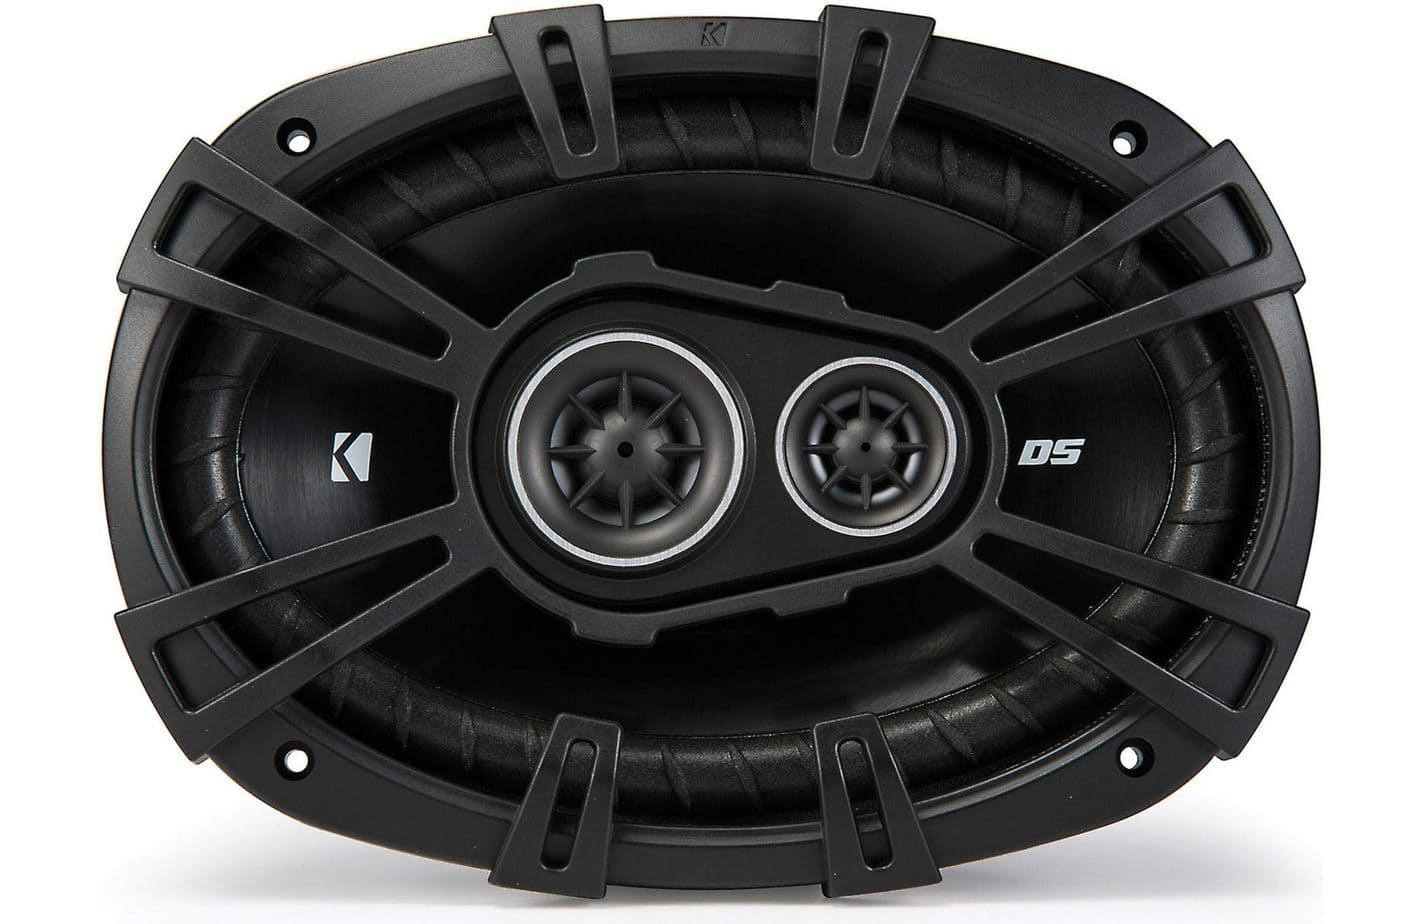 6x9 speaker for low end